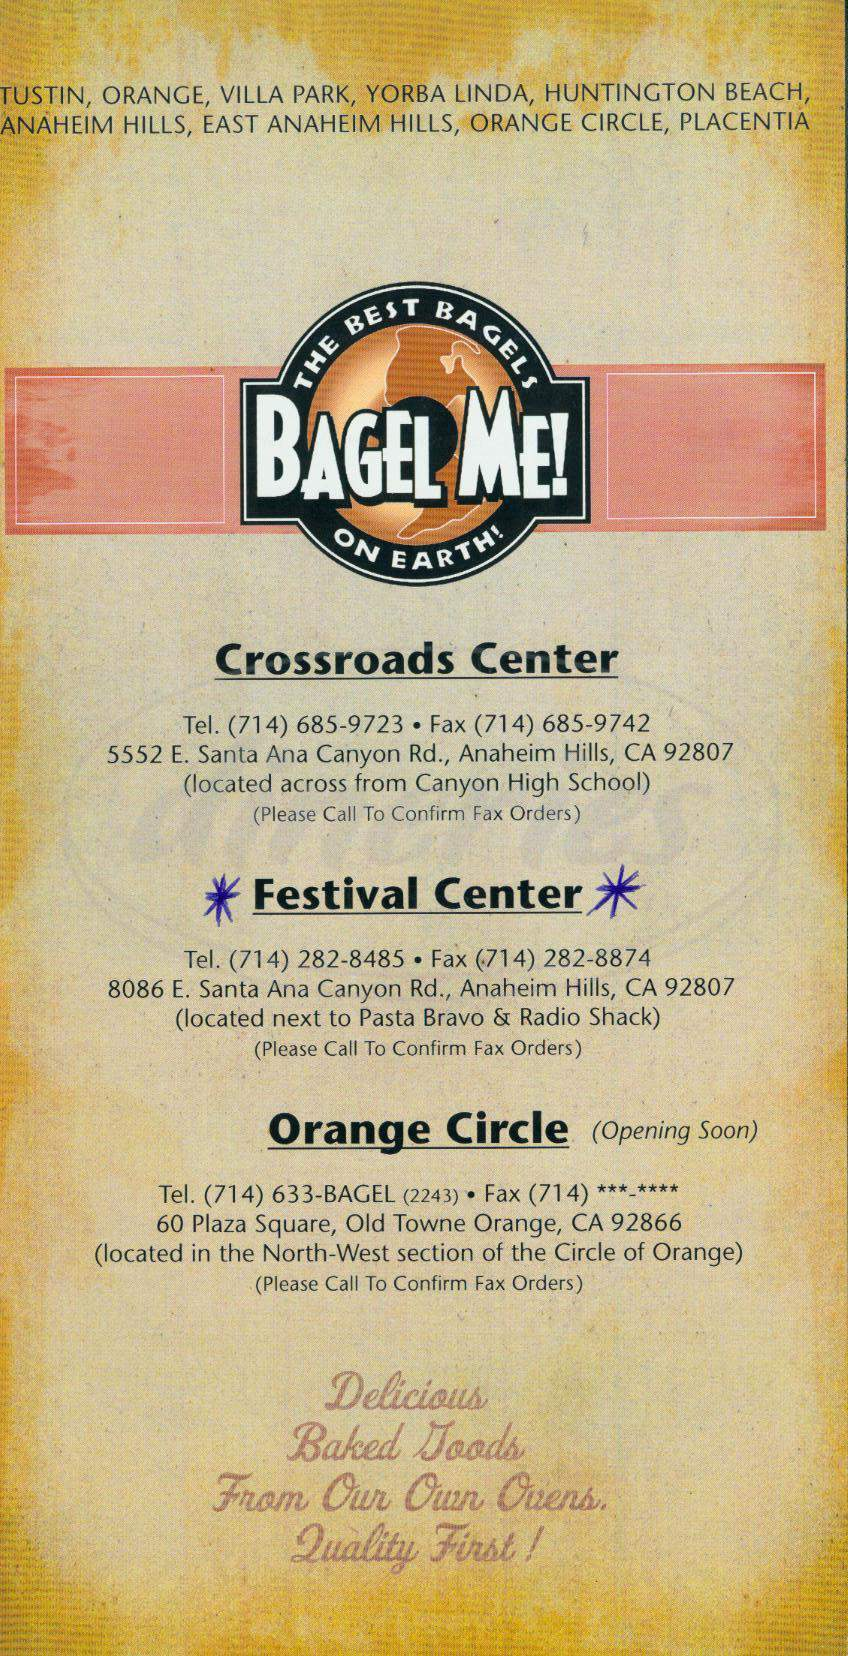 menu for Bagel Me!